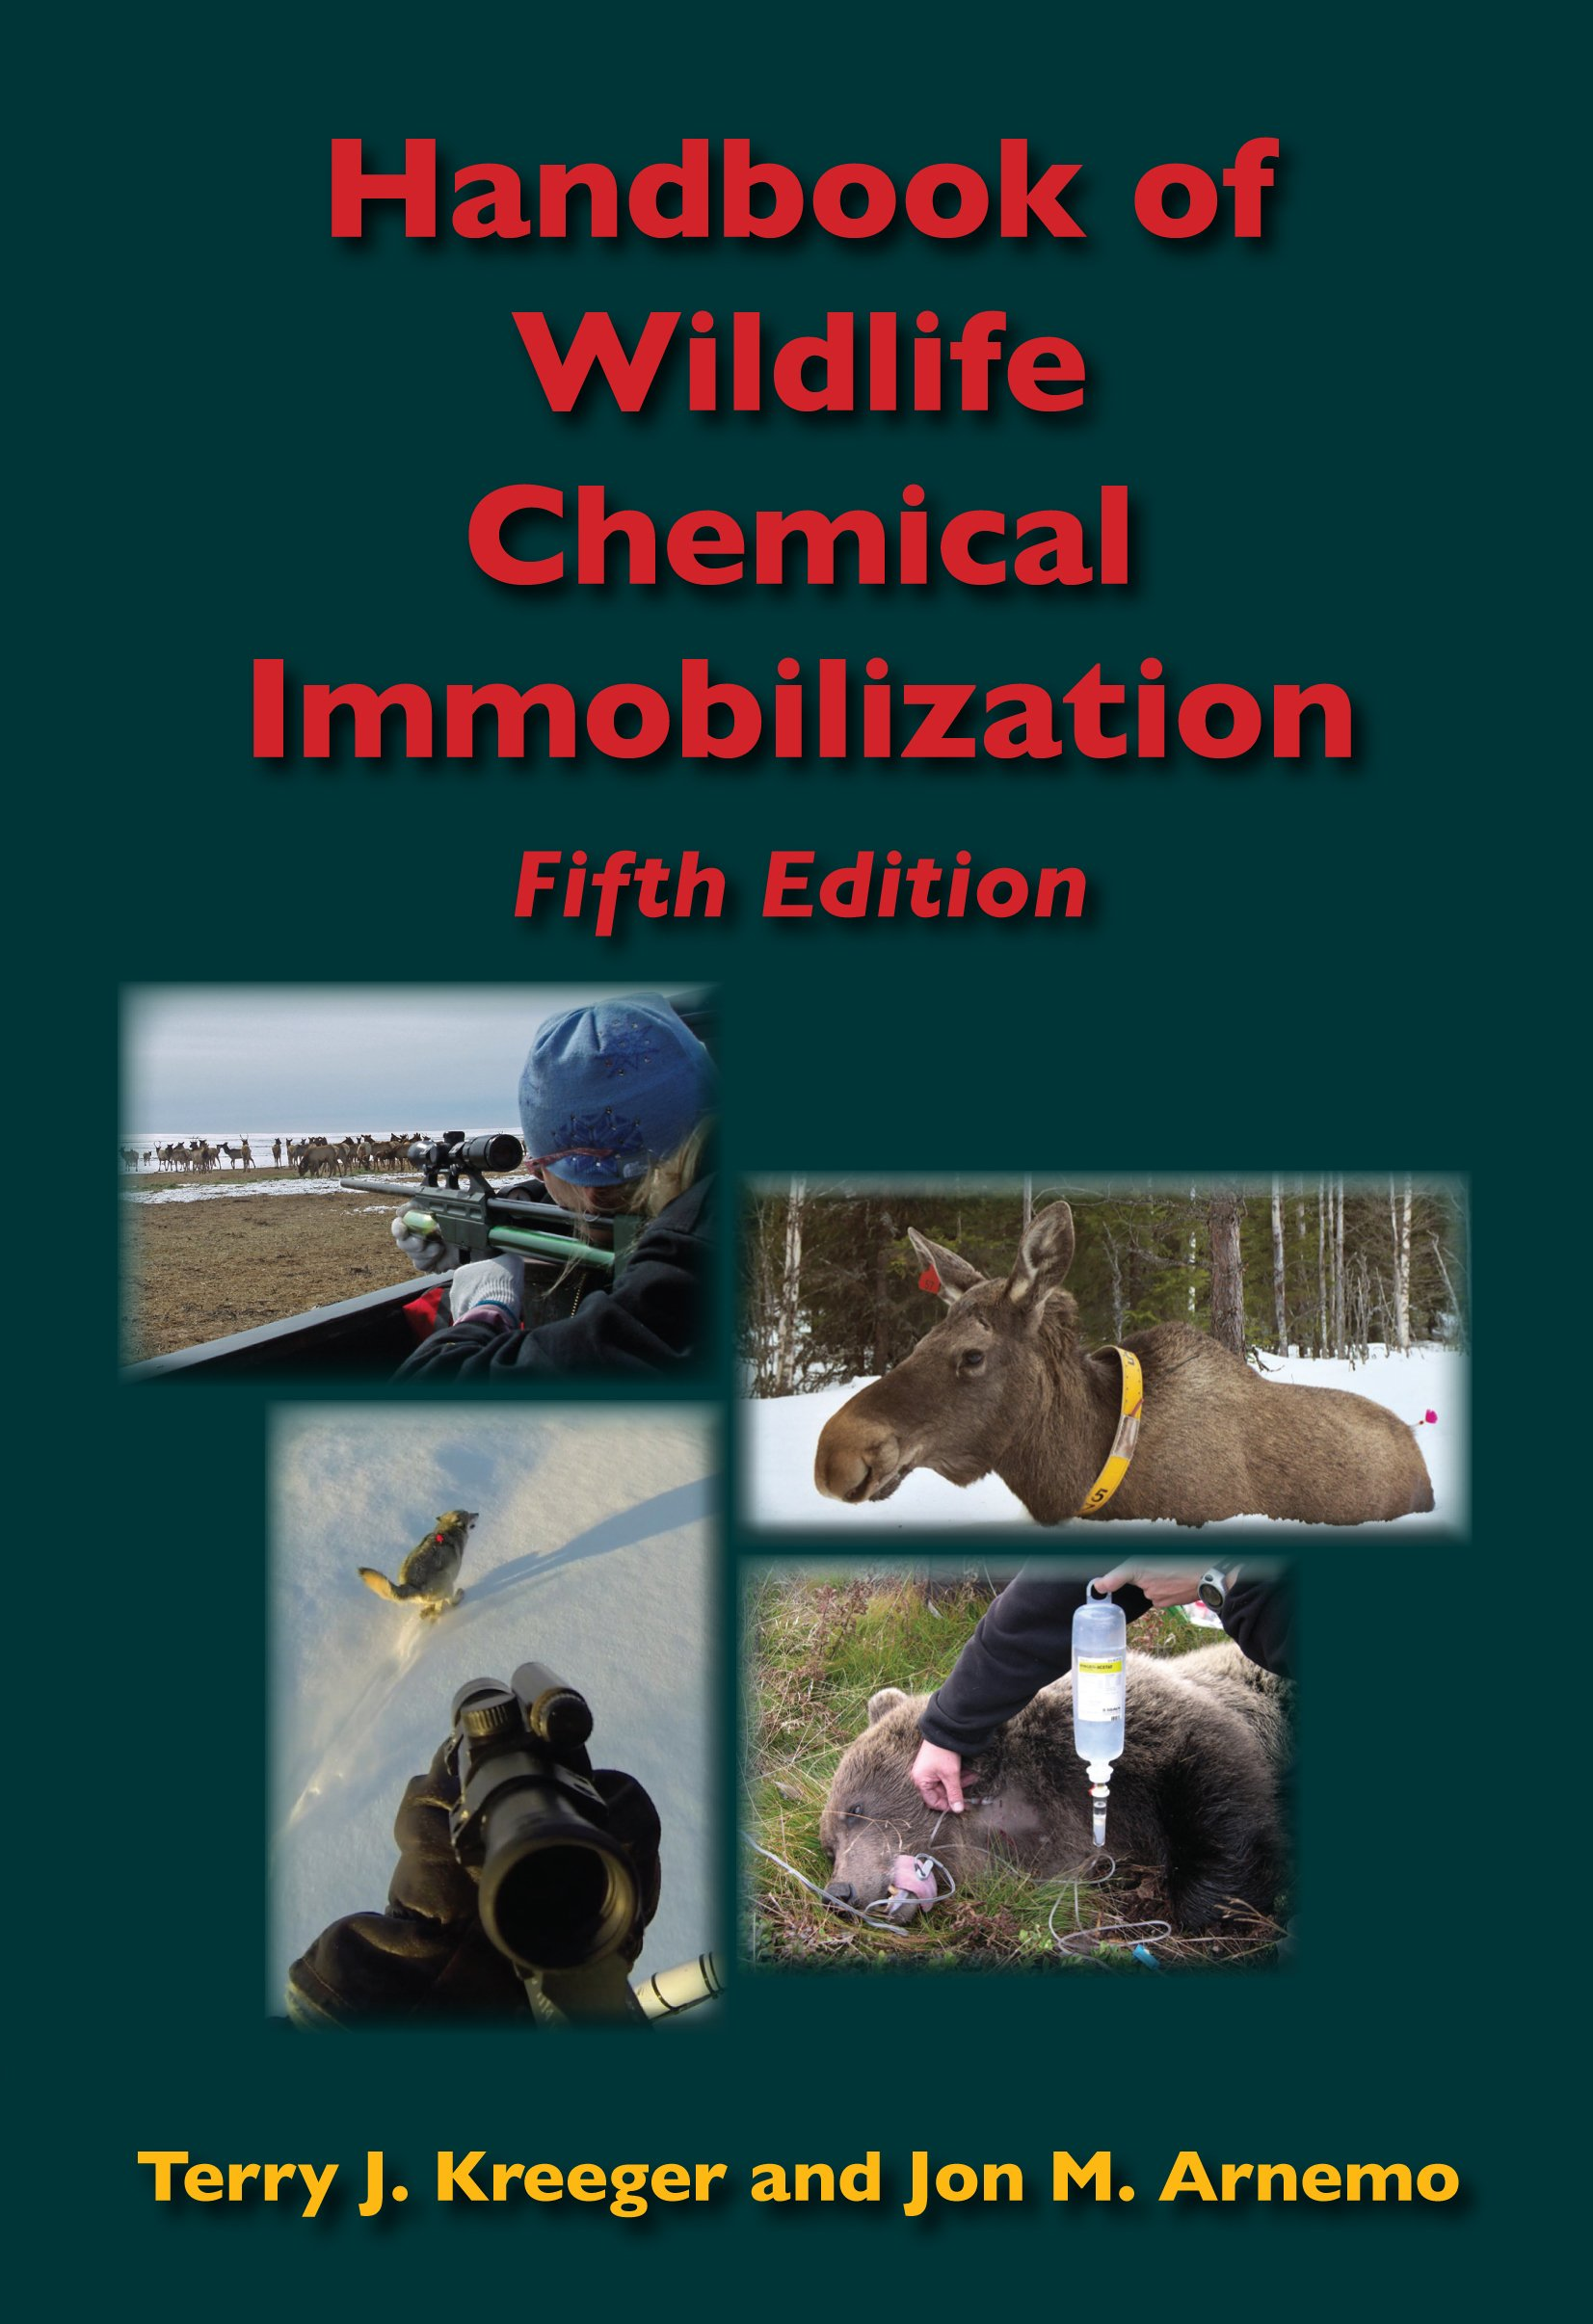 Handbook Wildlife Chemical Immobilization 5th product image